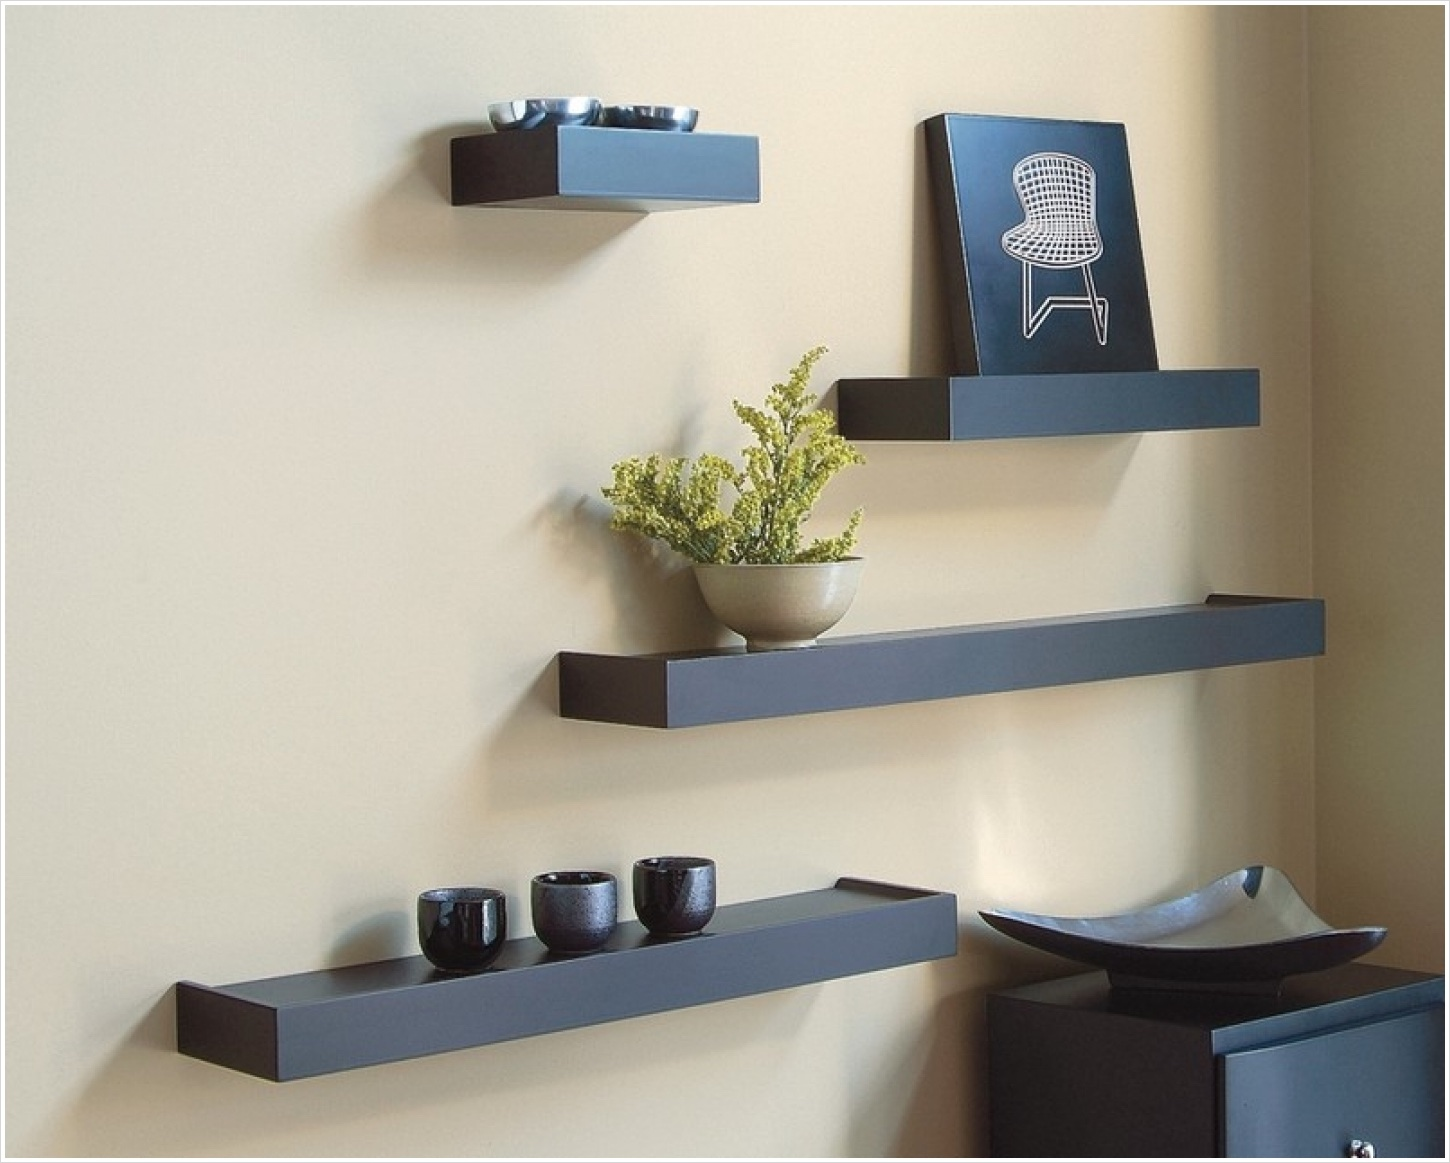 41 Perfect Shelf Decor Ideas Grey Bedrooms 58 Wall Shelf Ideas Bedroom Living Room Diy Floating Shelves and Decorating Interalle 8